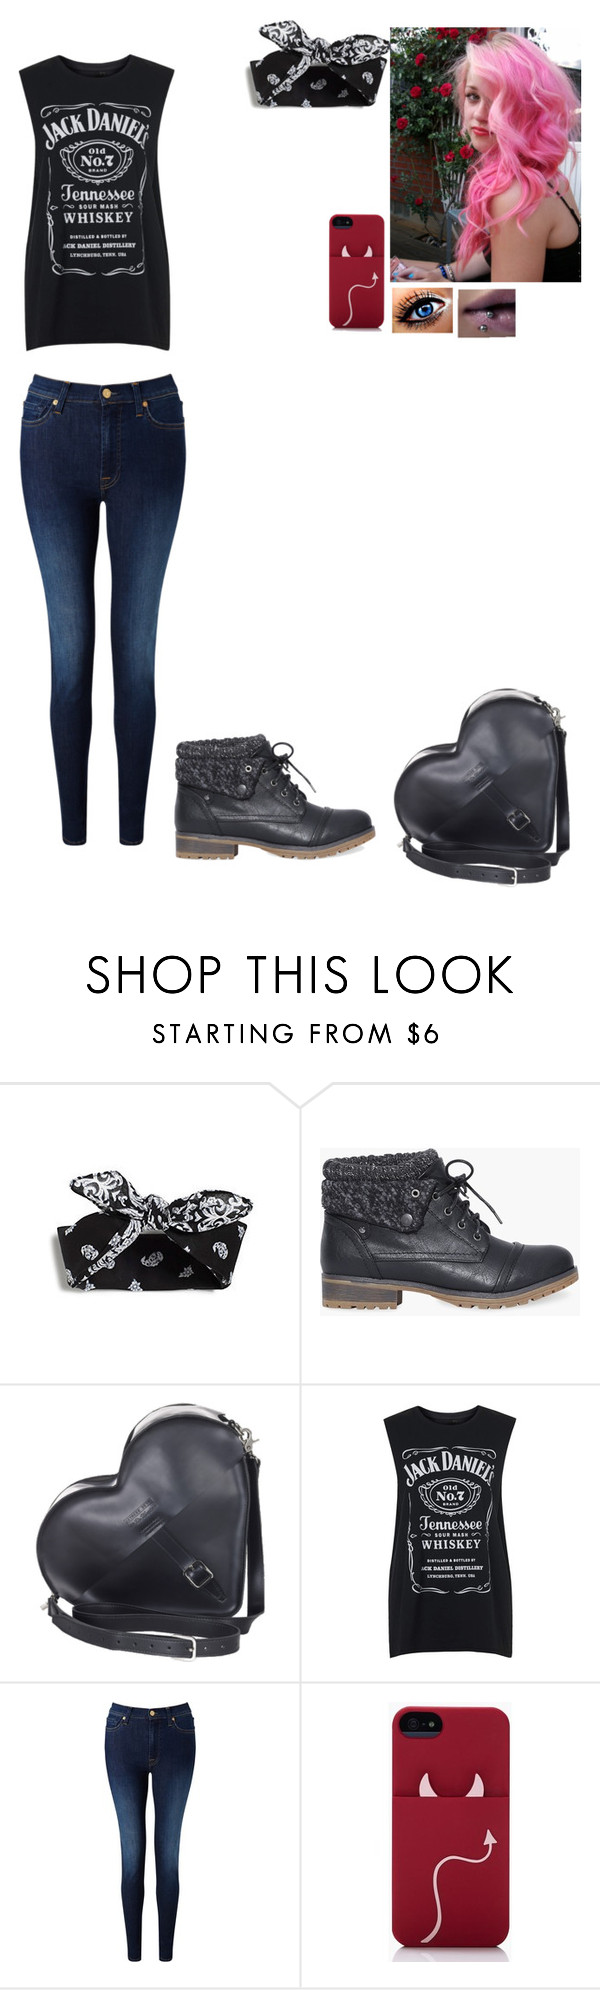 """""""Untitled #279"""" by sapphirejones ❤ liked on Polyvore featuring Dr. Martens, Tee and Cake, 7 For All Mankind, Kate Spade, women's clothing, women's fashion, women, female, woman and misses"""